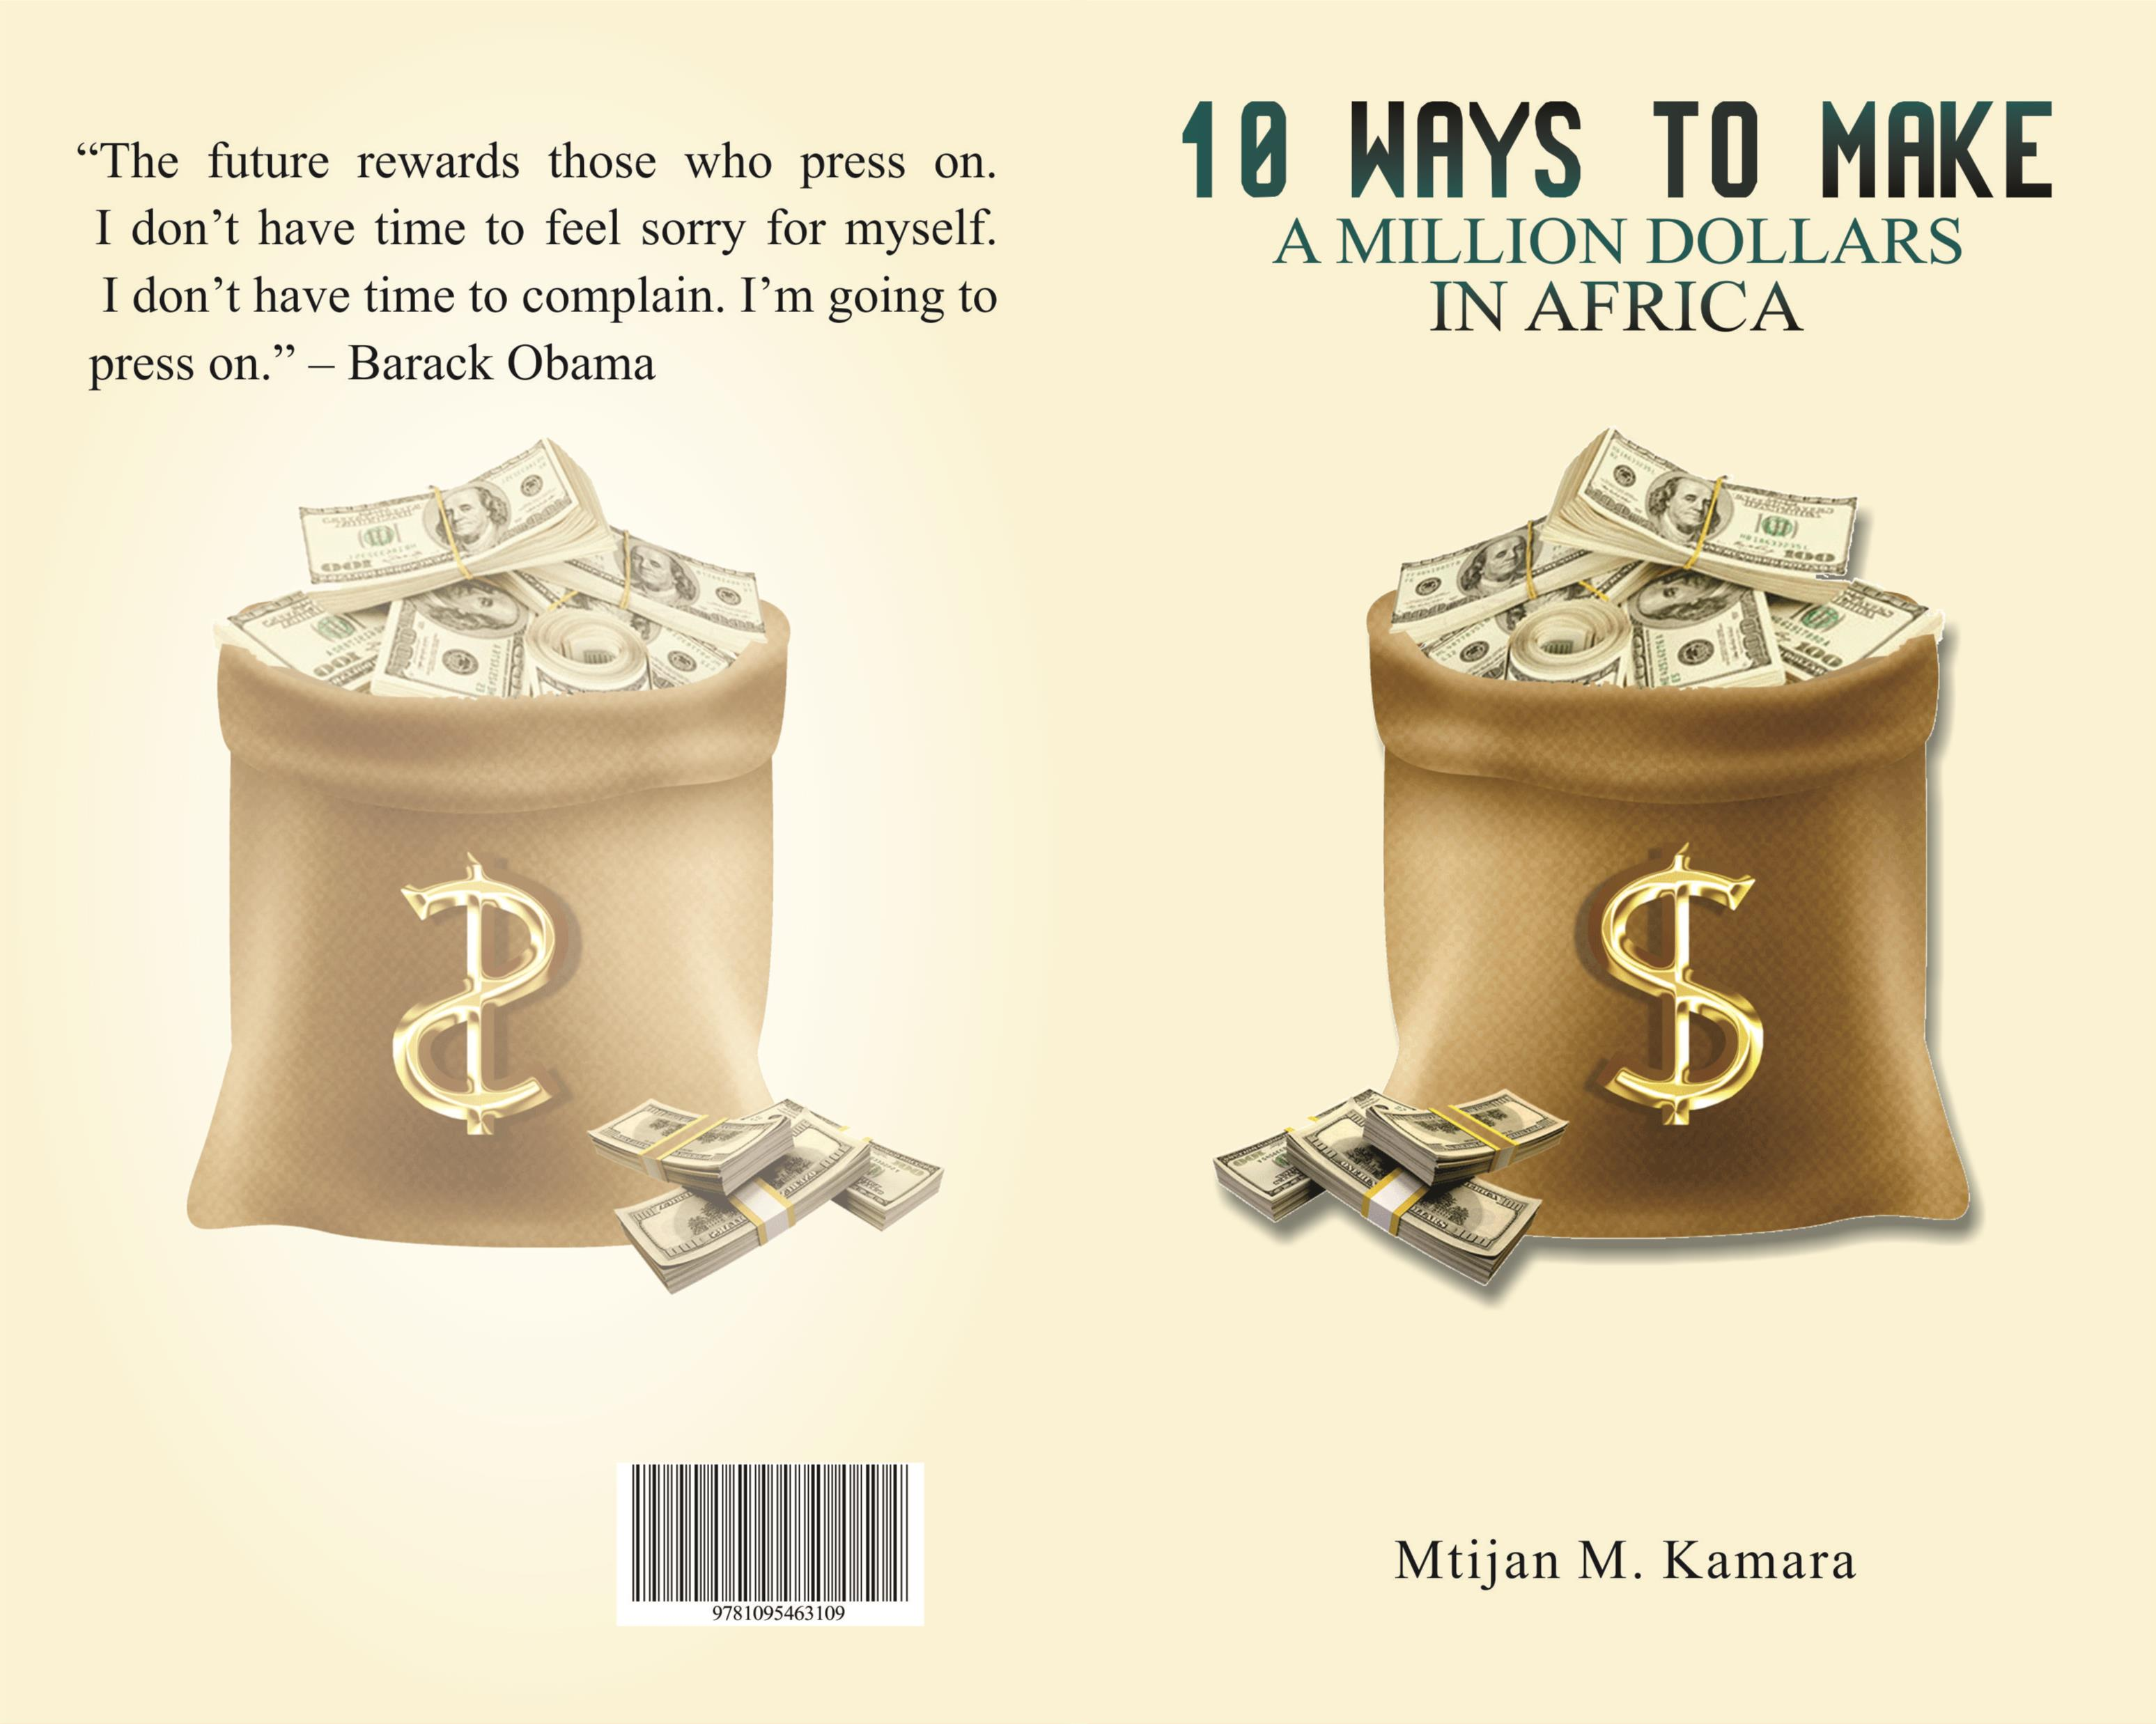 10 WAYS TO MAKE A MILLION DOLLARS IN AFRICA cover image